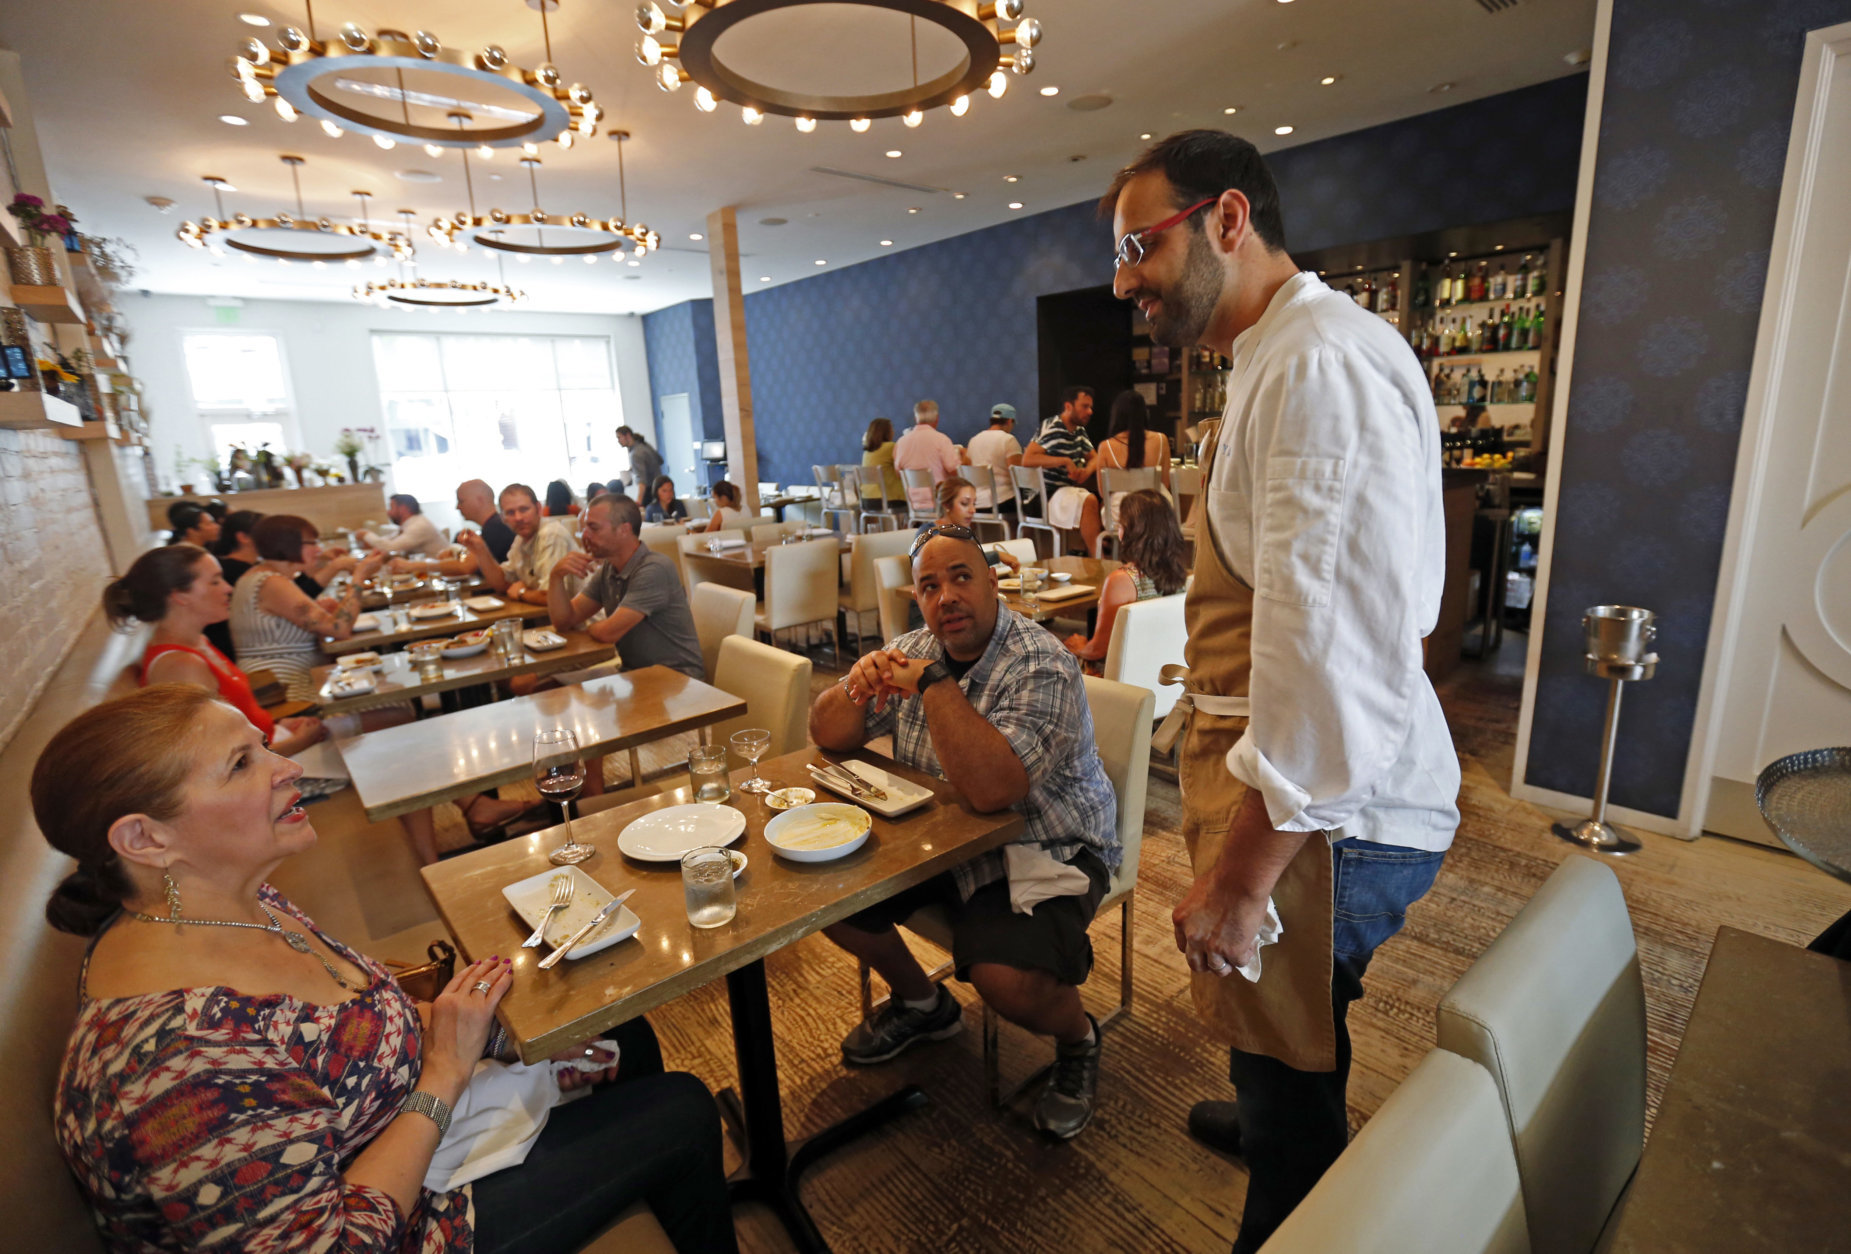 In this Tuesday, May 31, 2016 photo, Chef Alon Shaya, proprietor of Shaya Restaurant, talks to customers at his restaurant in New Orleans. In 2015, Shaya opened his namesake restaurant, a bustling Israeli eatery on chic Magazine Street that the James Beard Foundation in May named the Best New Restaurant in the U.S. (AP Photo/Gerald Herbert)